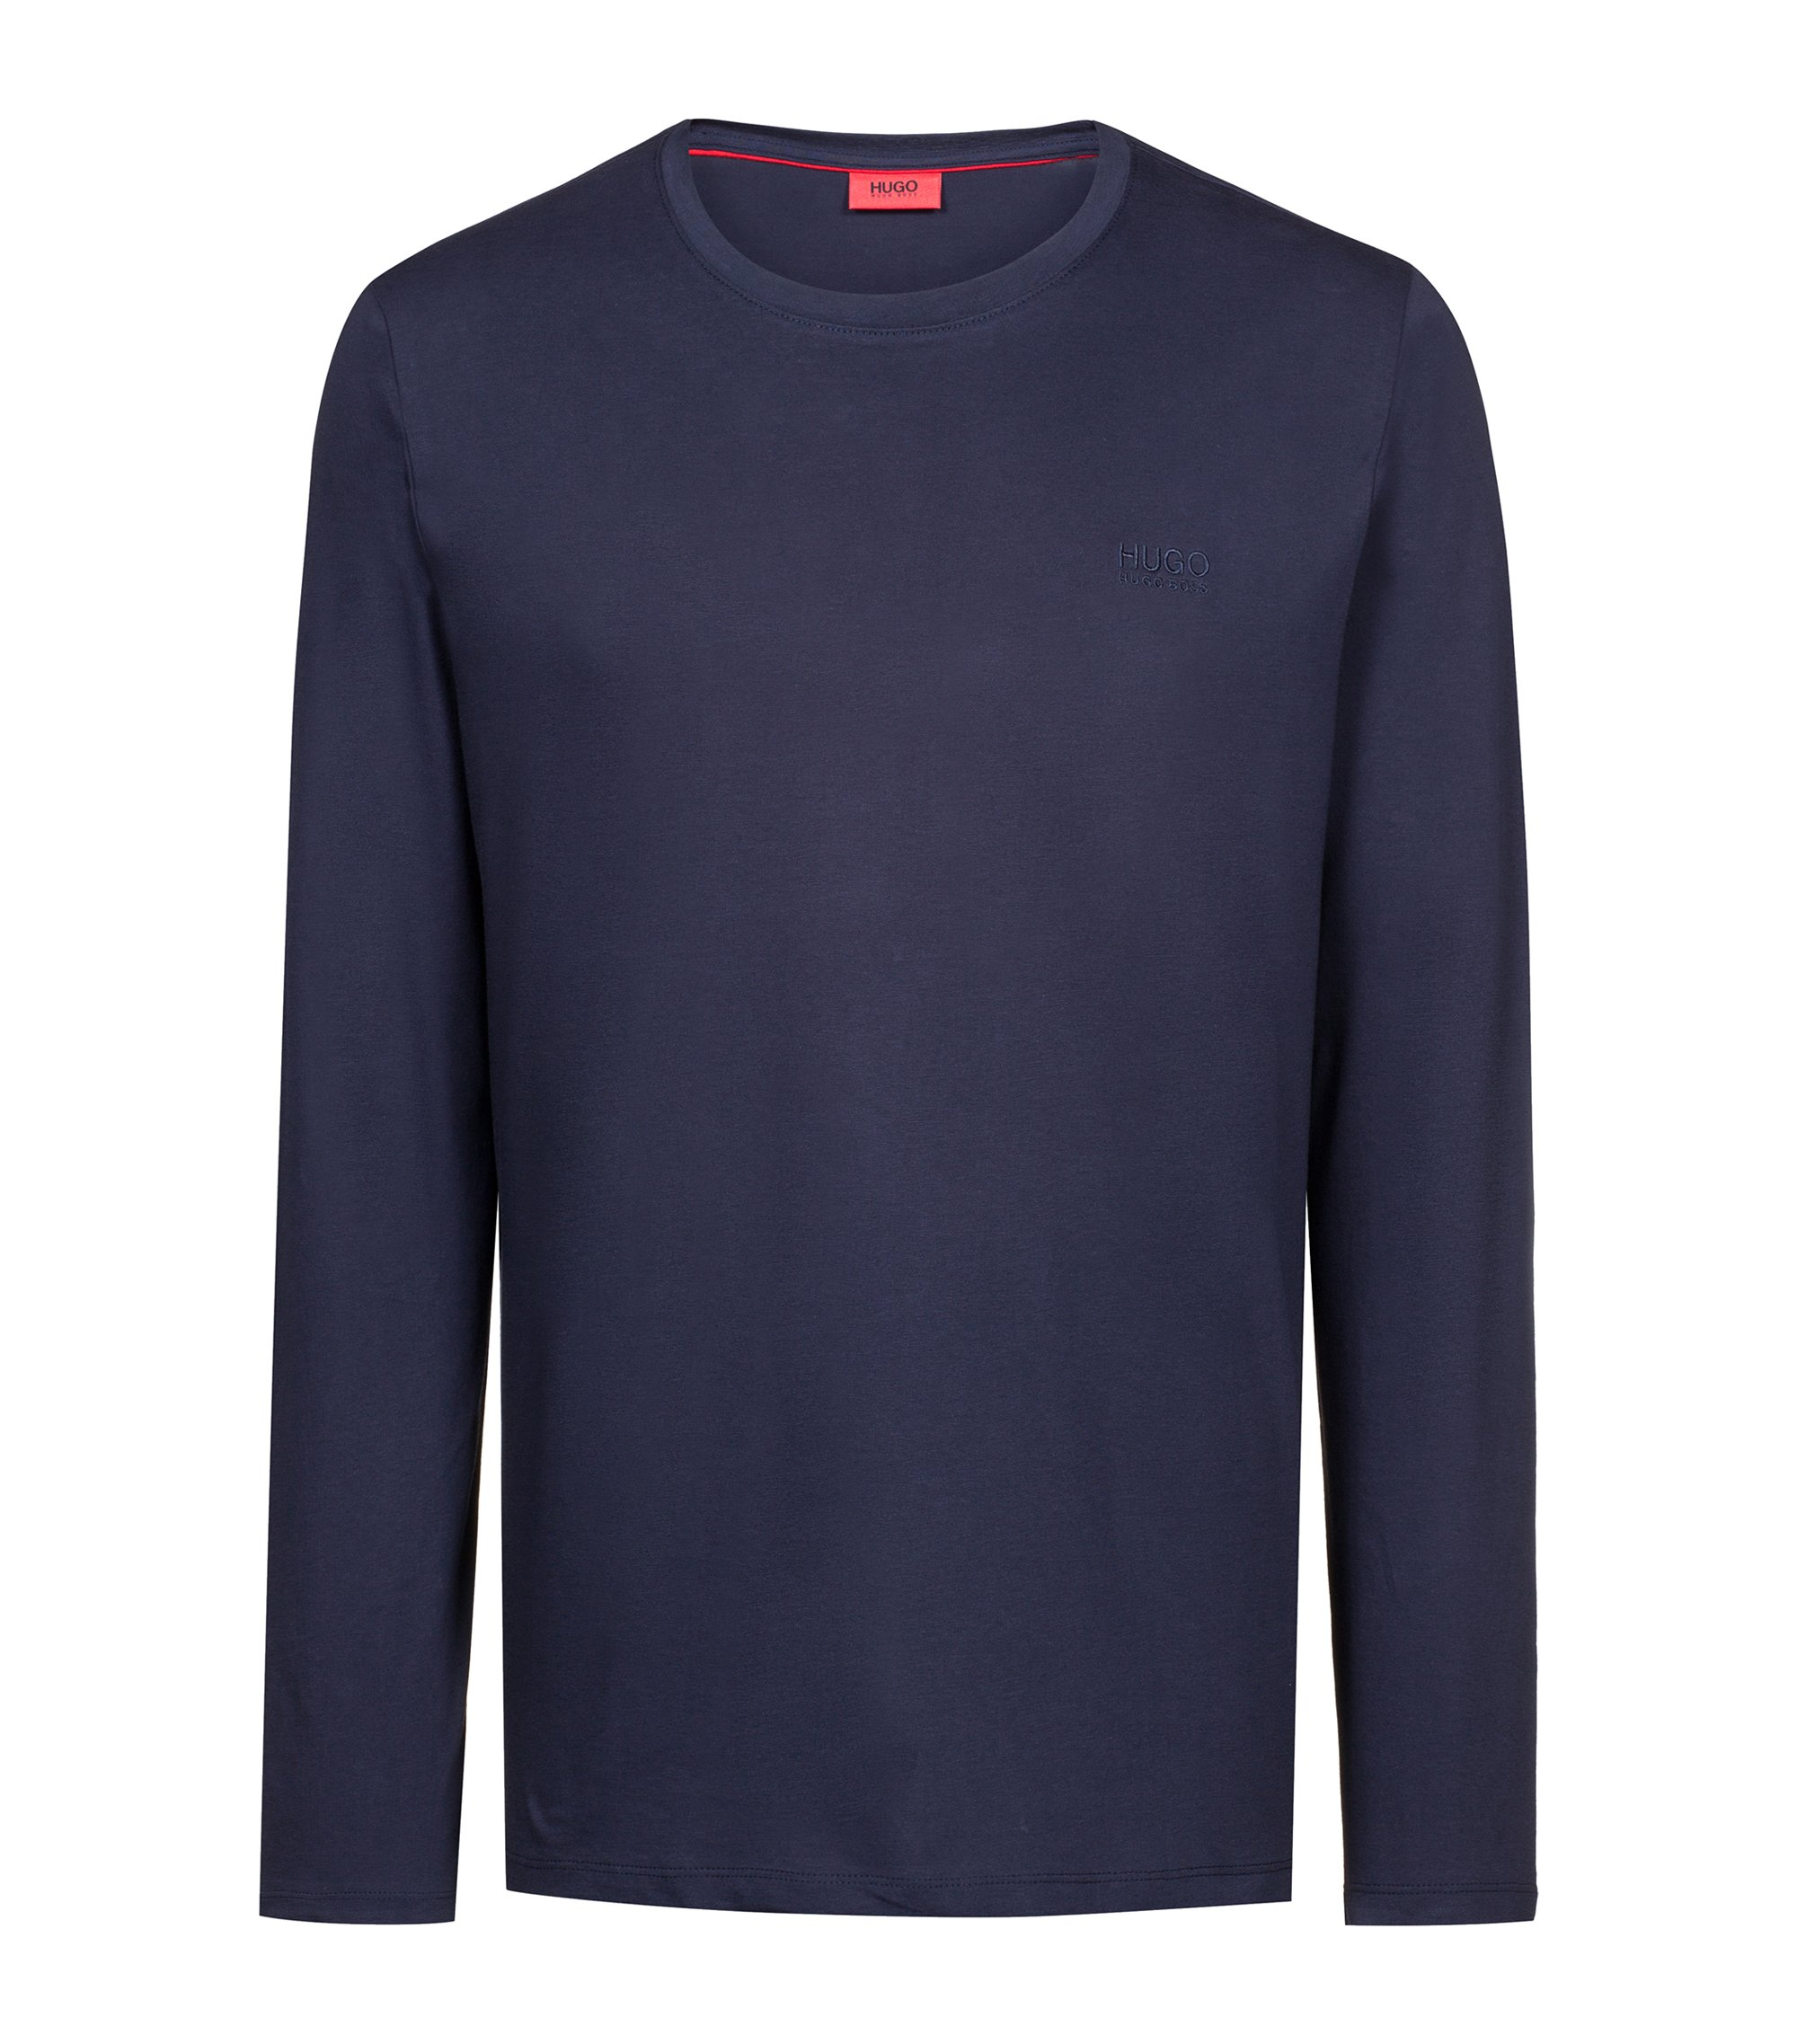 Cotton sweatshirt with left-chest logo, Dark Blue